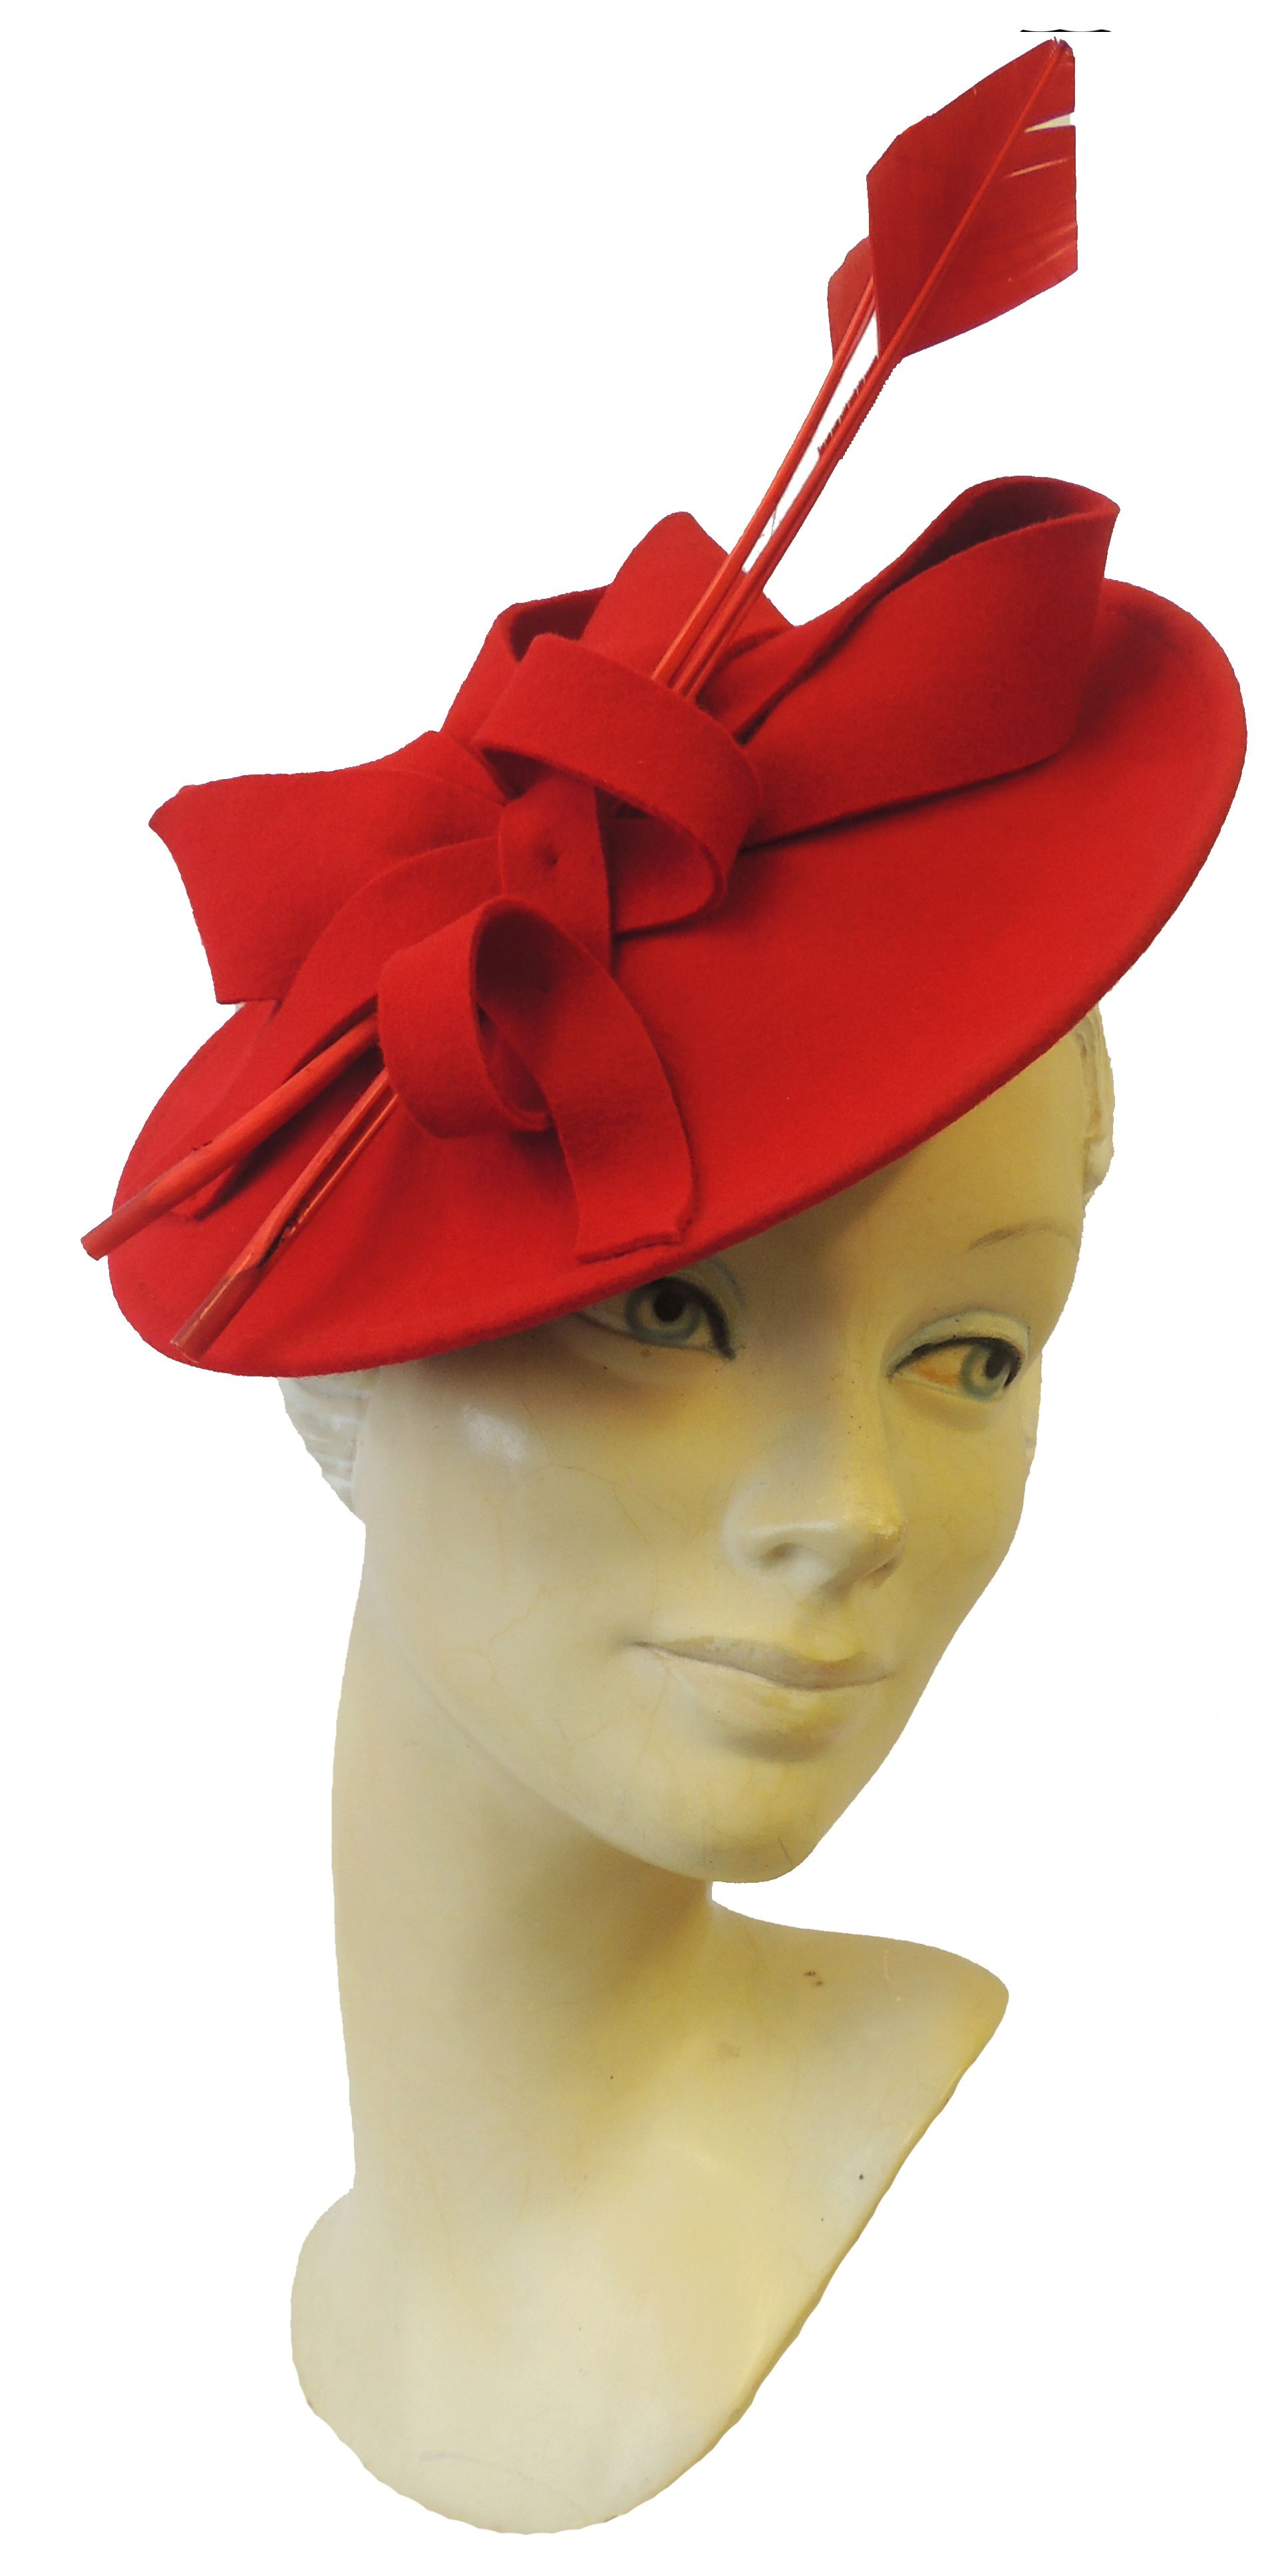 1940s Style Hats New Ladies Retro 1940s 50s Hollywood Glamour Retro Pin-up  Saucer Tilt Hat Hatina  33.88 AT vintagedancer.com 07d1107593f